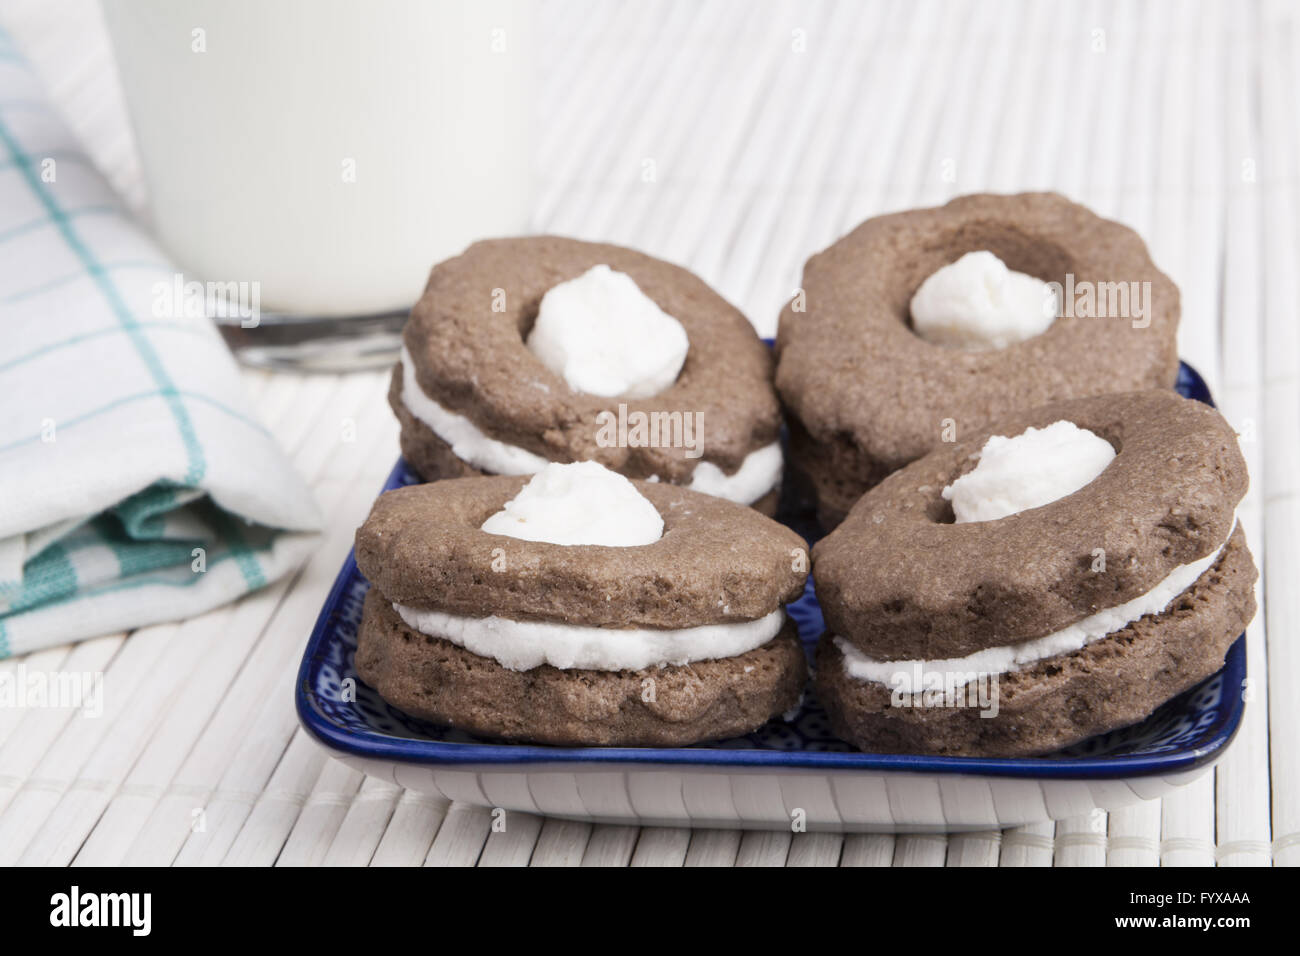 Four Cookies and Milk - Stock Image